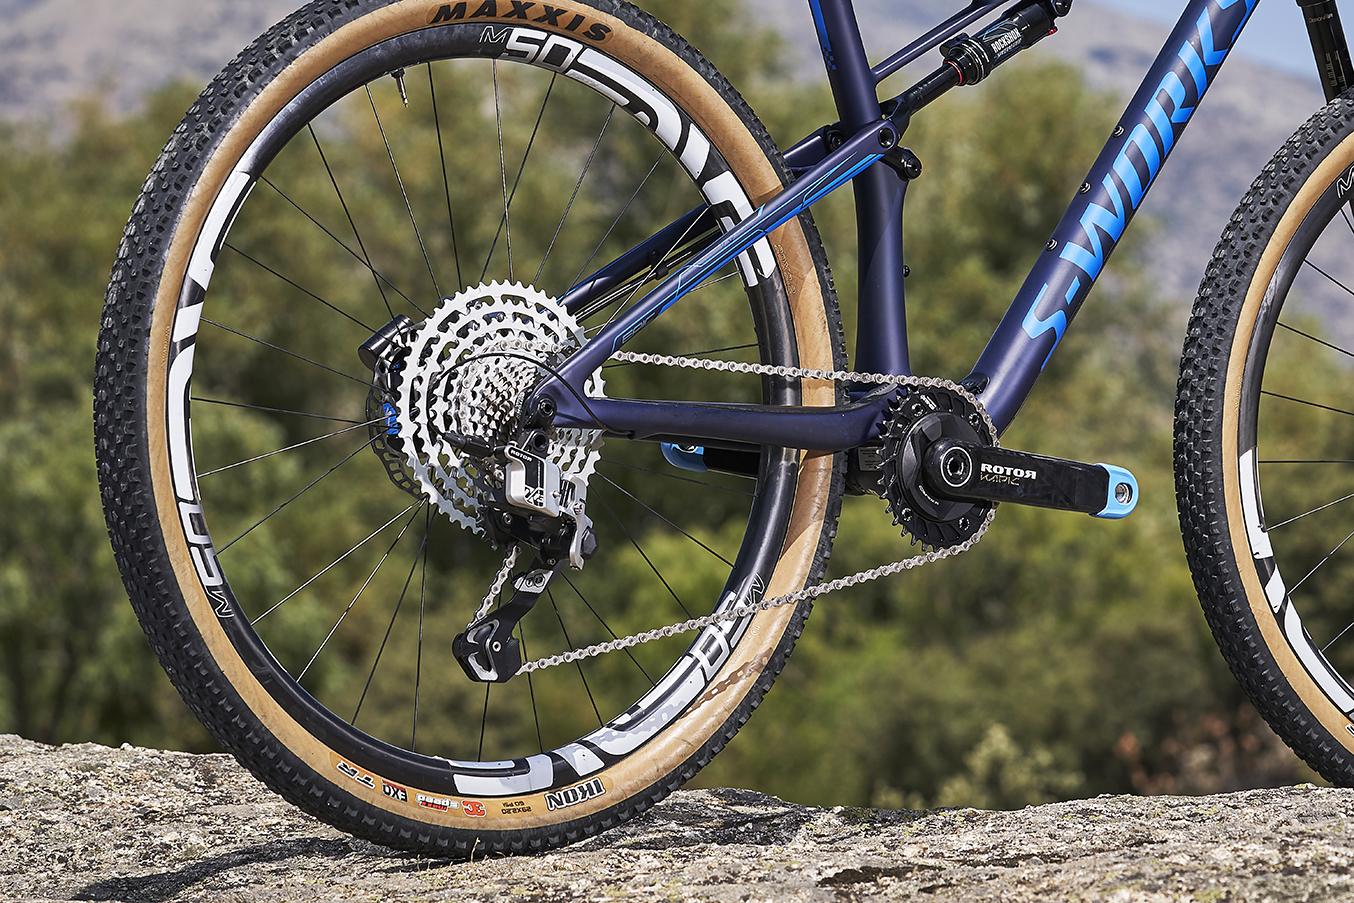 The ROTOR 13-speed Hydraulic MTB Drivetrain is Designed for Reliability, Available Soon - Singletracks Mountain Bike News